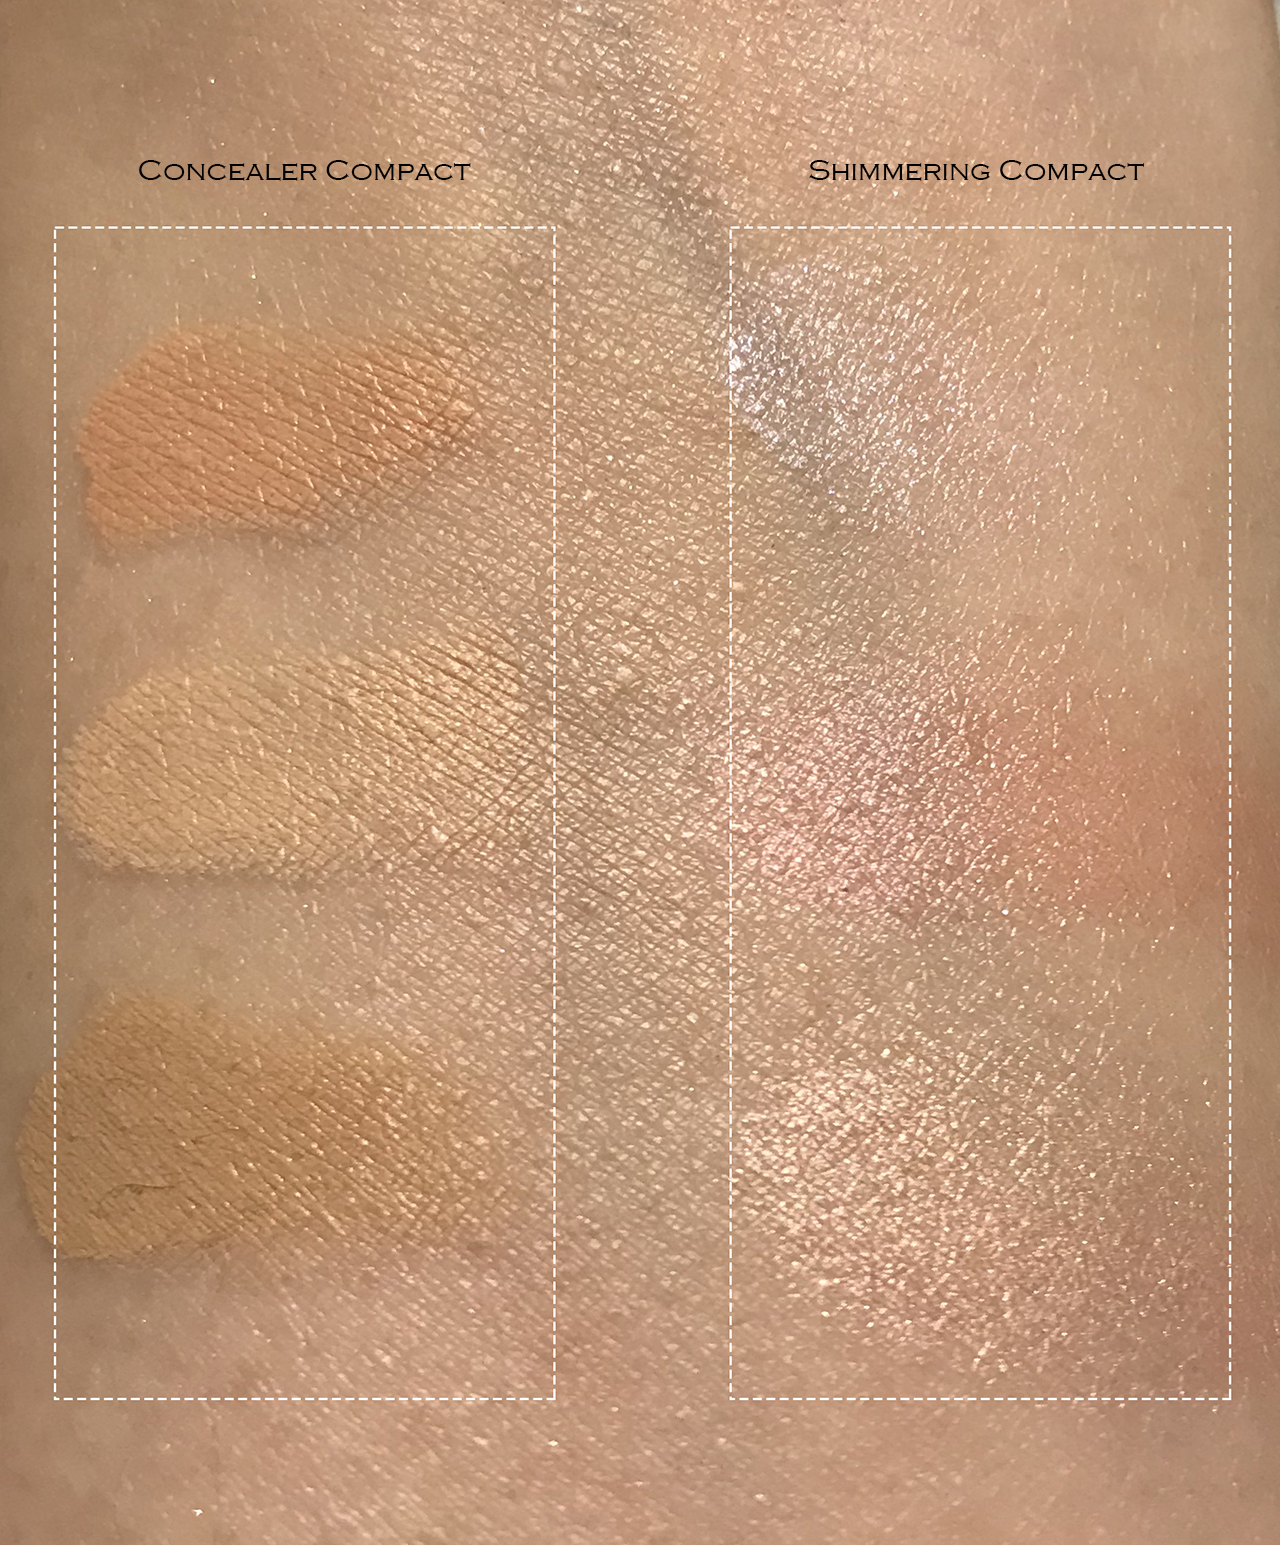 Kanebo Concealer & Shimmering Compact swatches